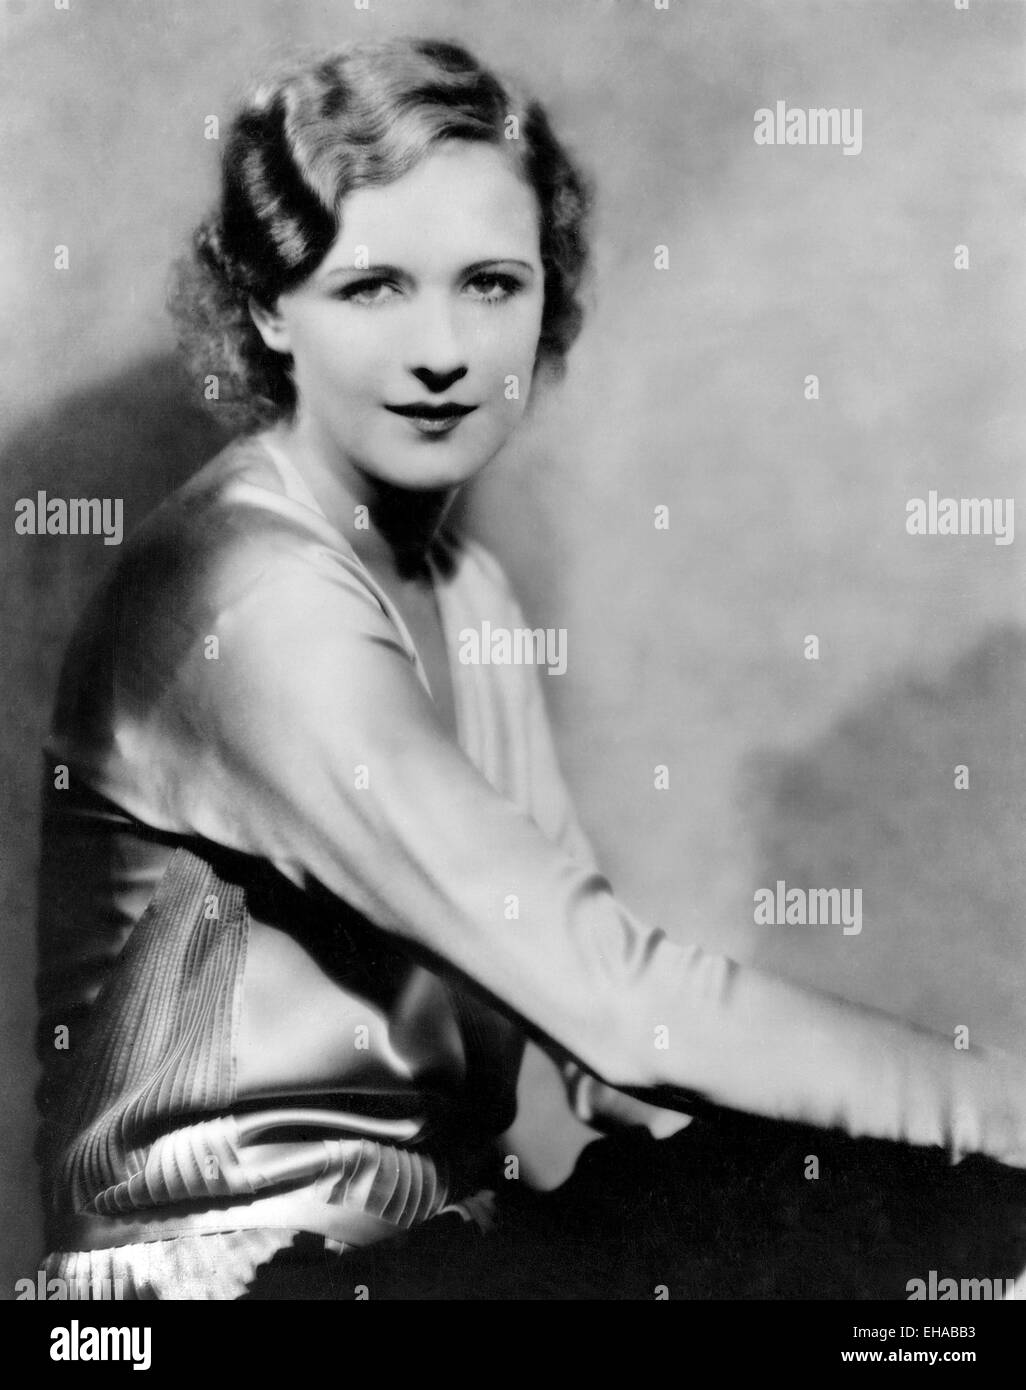 Marilyn Miller, Portrait, 1929 - Stock Image